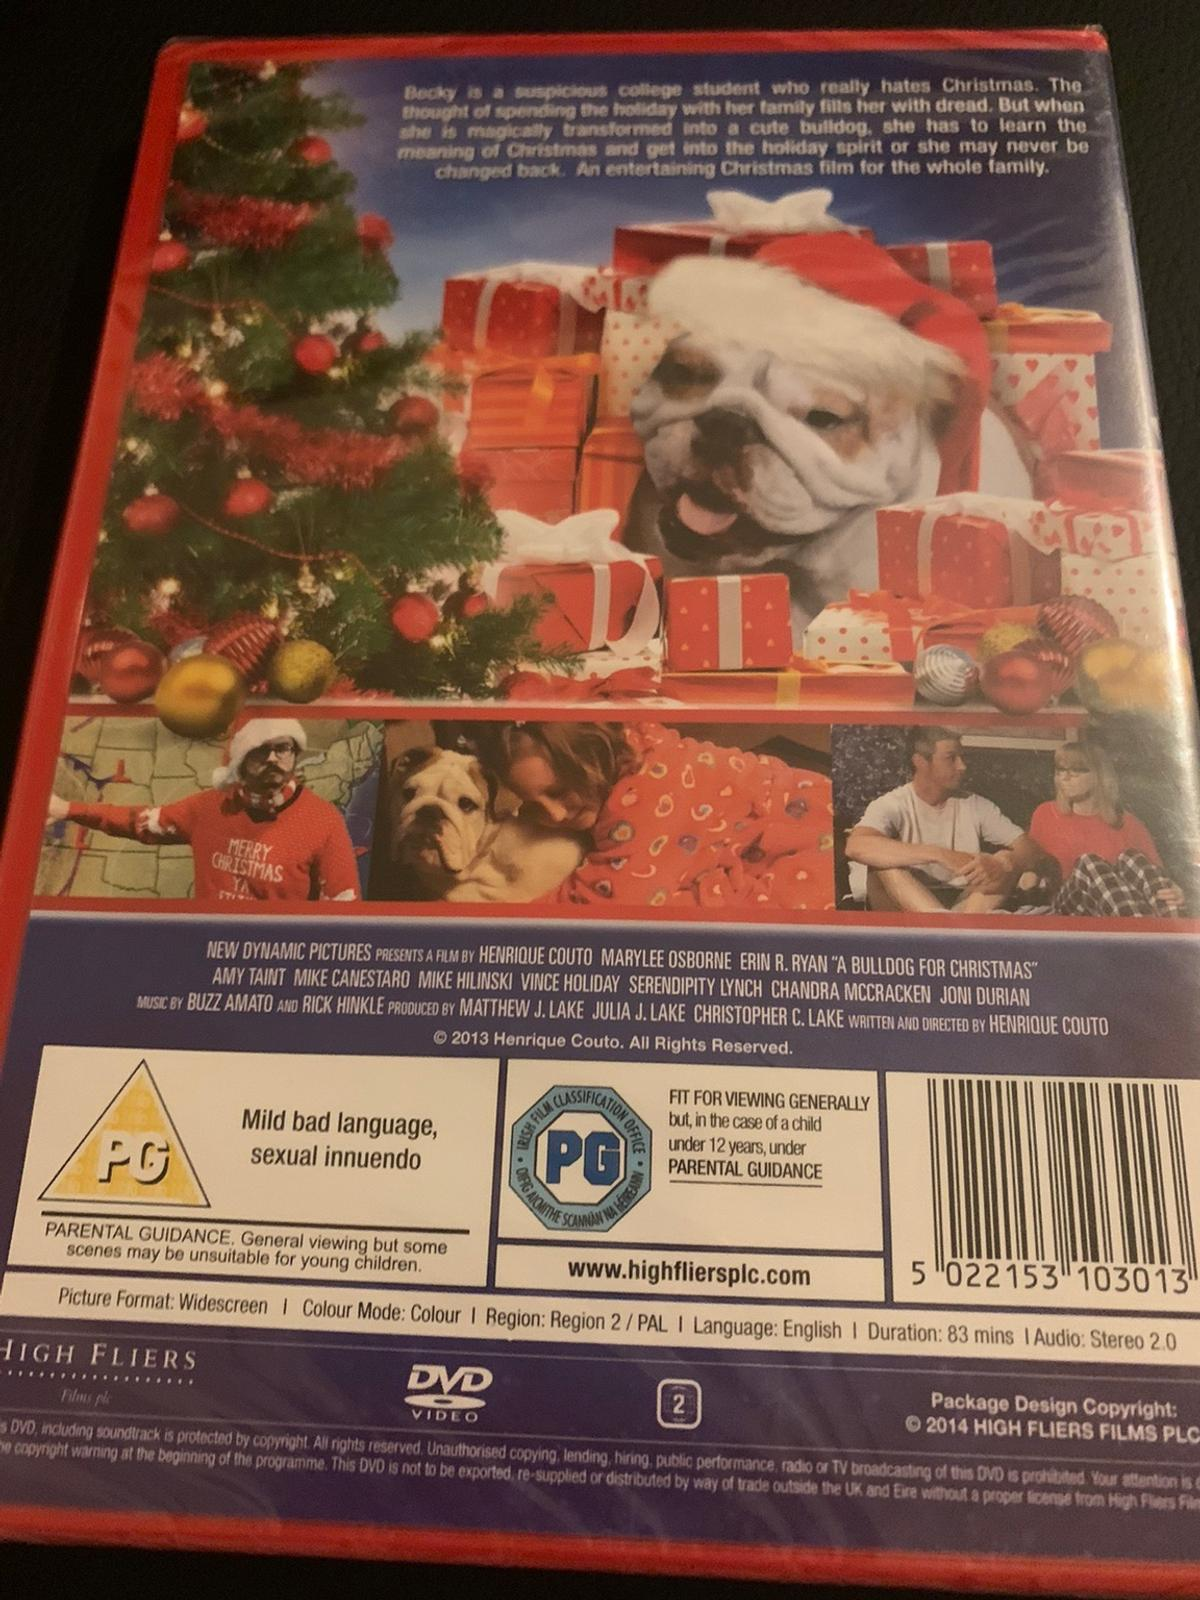 A bulldog for chrismas dvd unopened in packaging